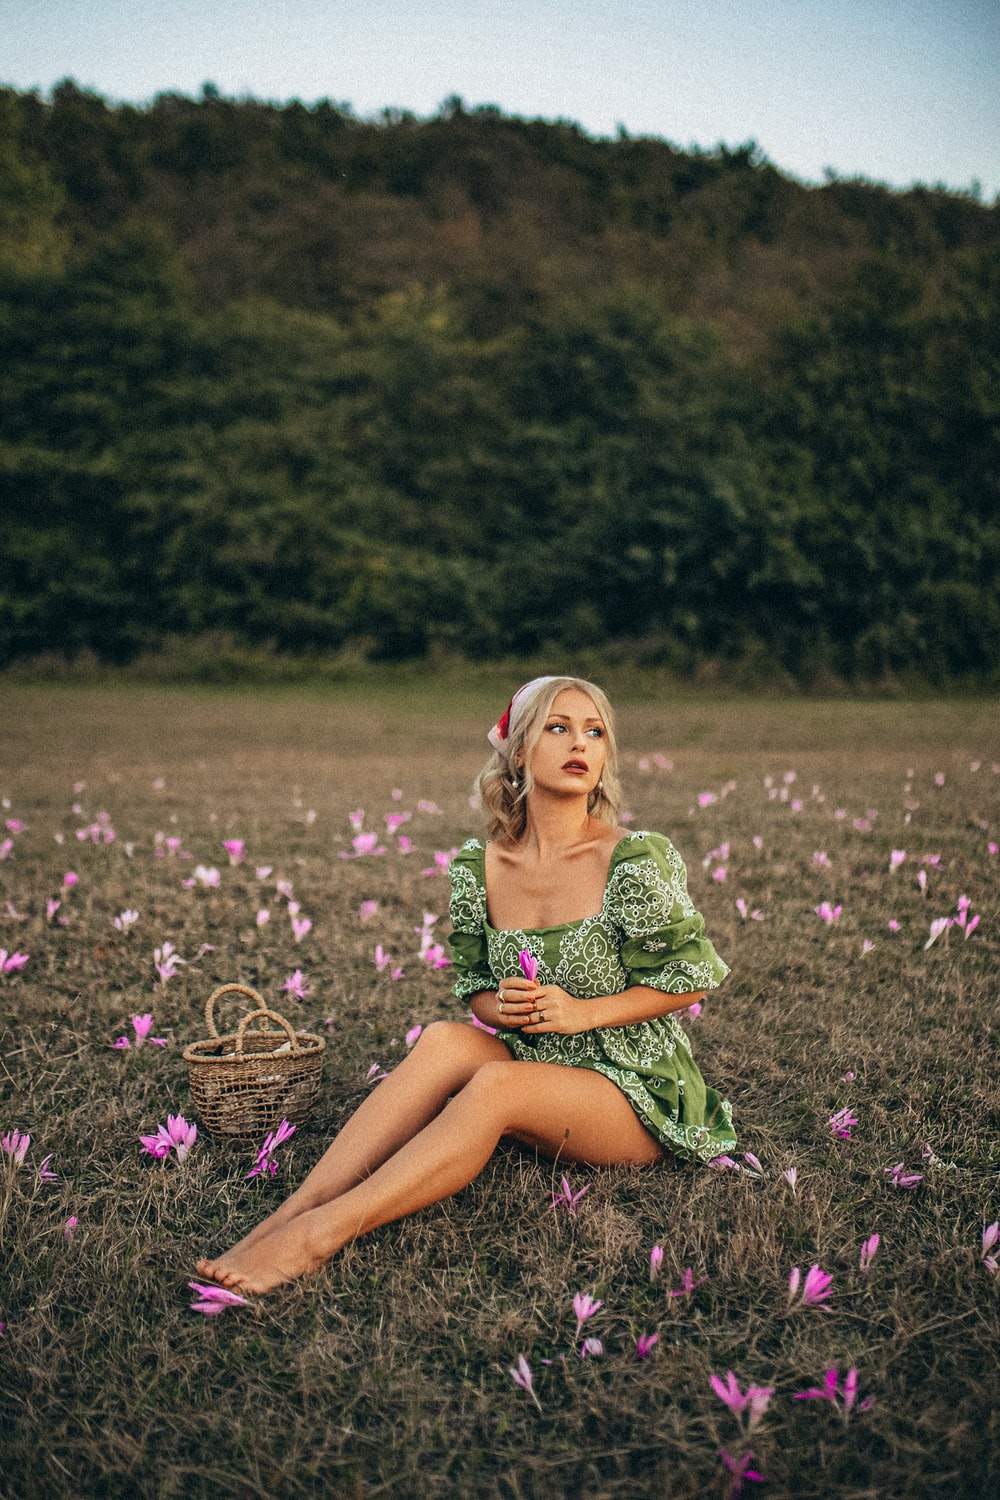 woman in green and white dress sitting on purple flower field during daytime